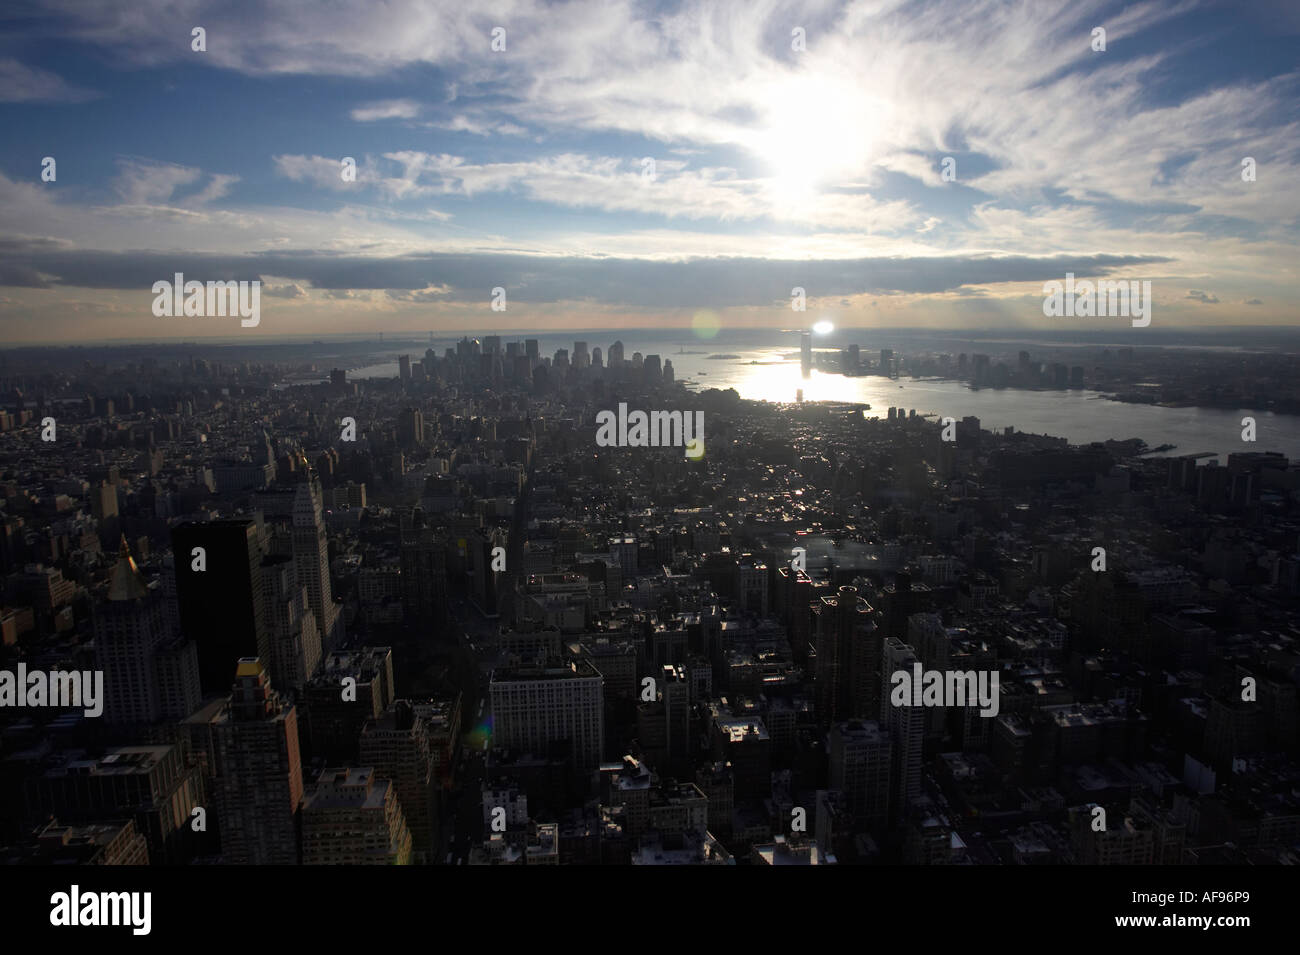 spectacular view from observation deck 86th floor near the top of the empire state building looking towards southern manhattan - Stock Image